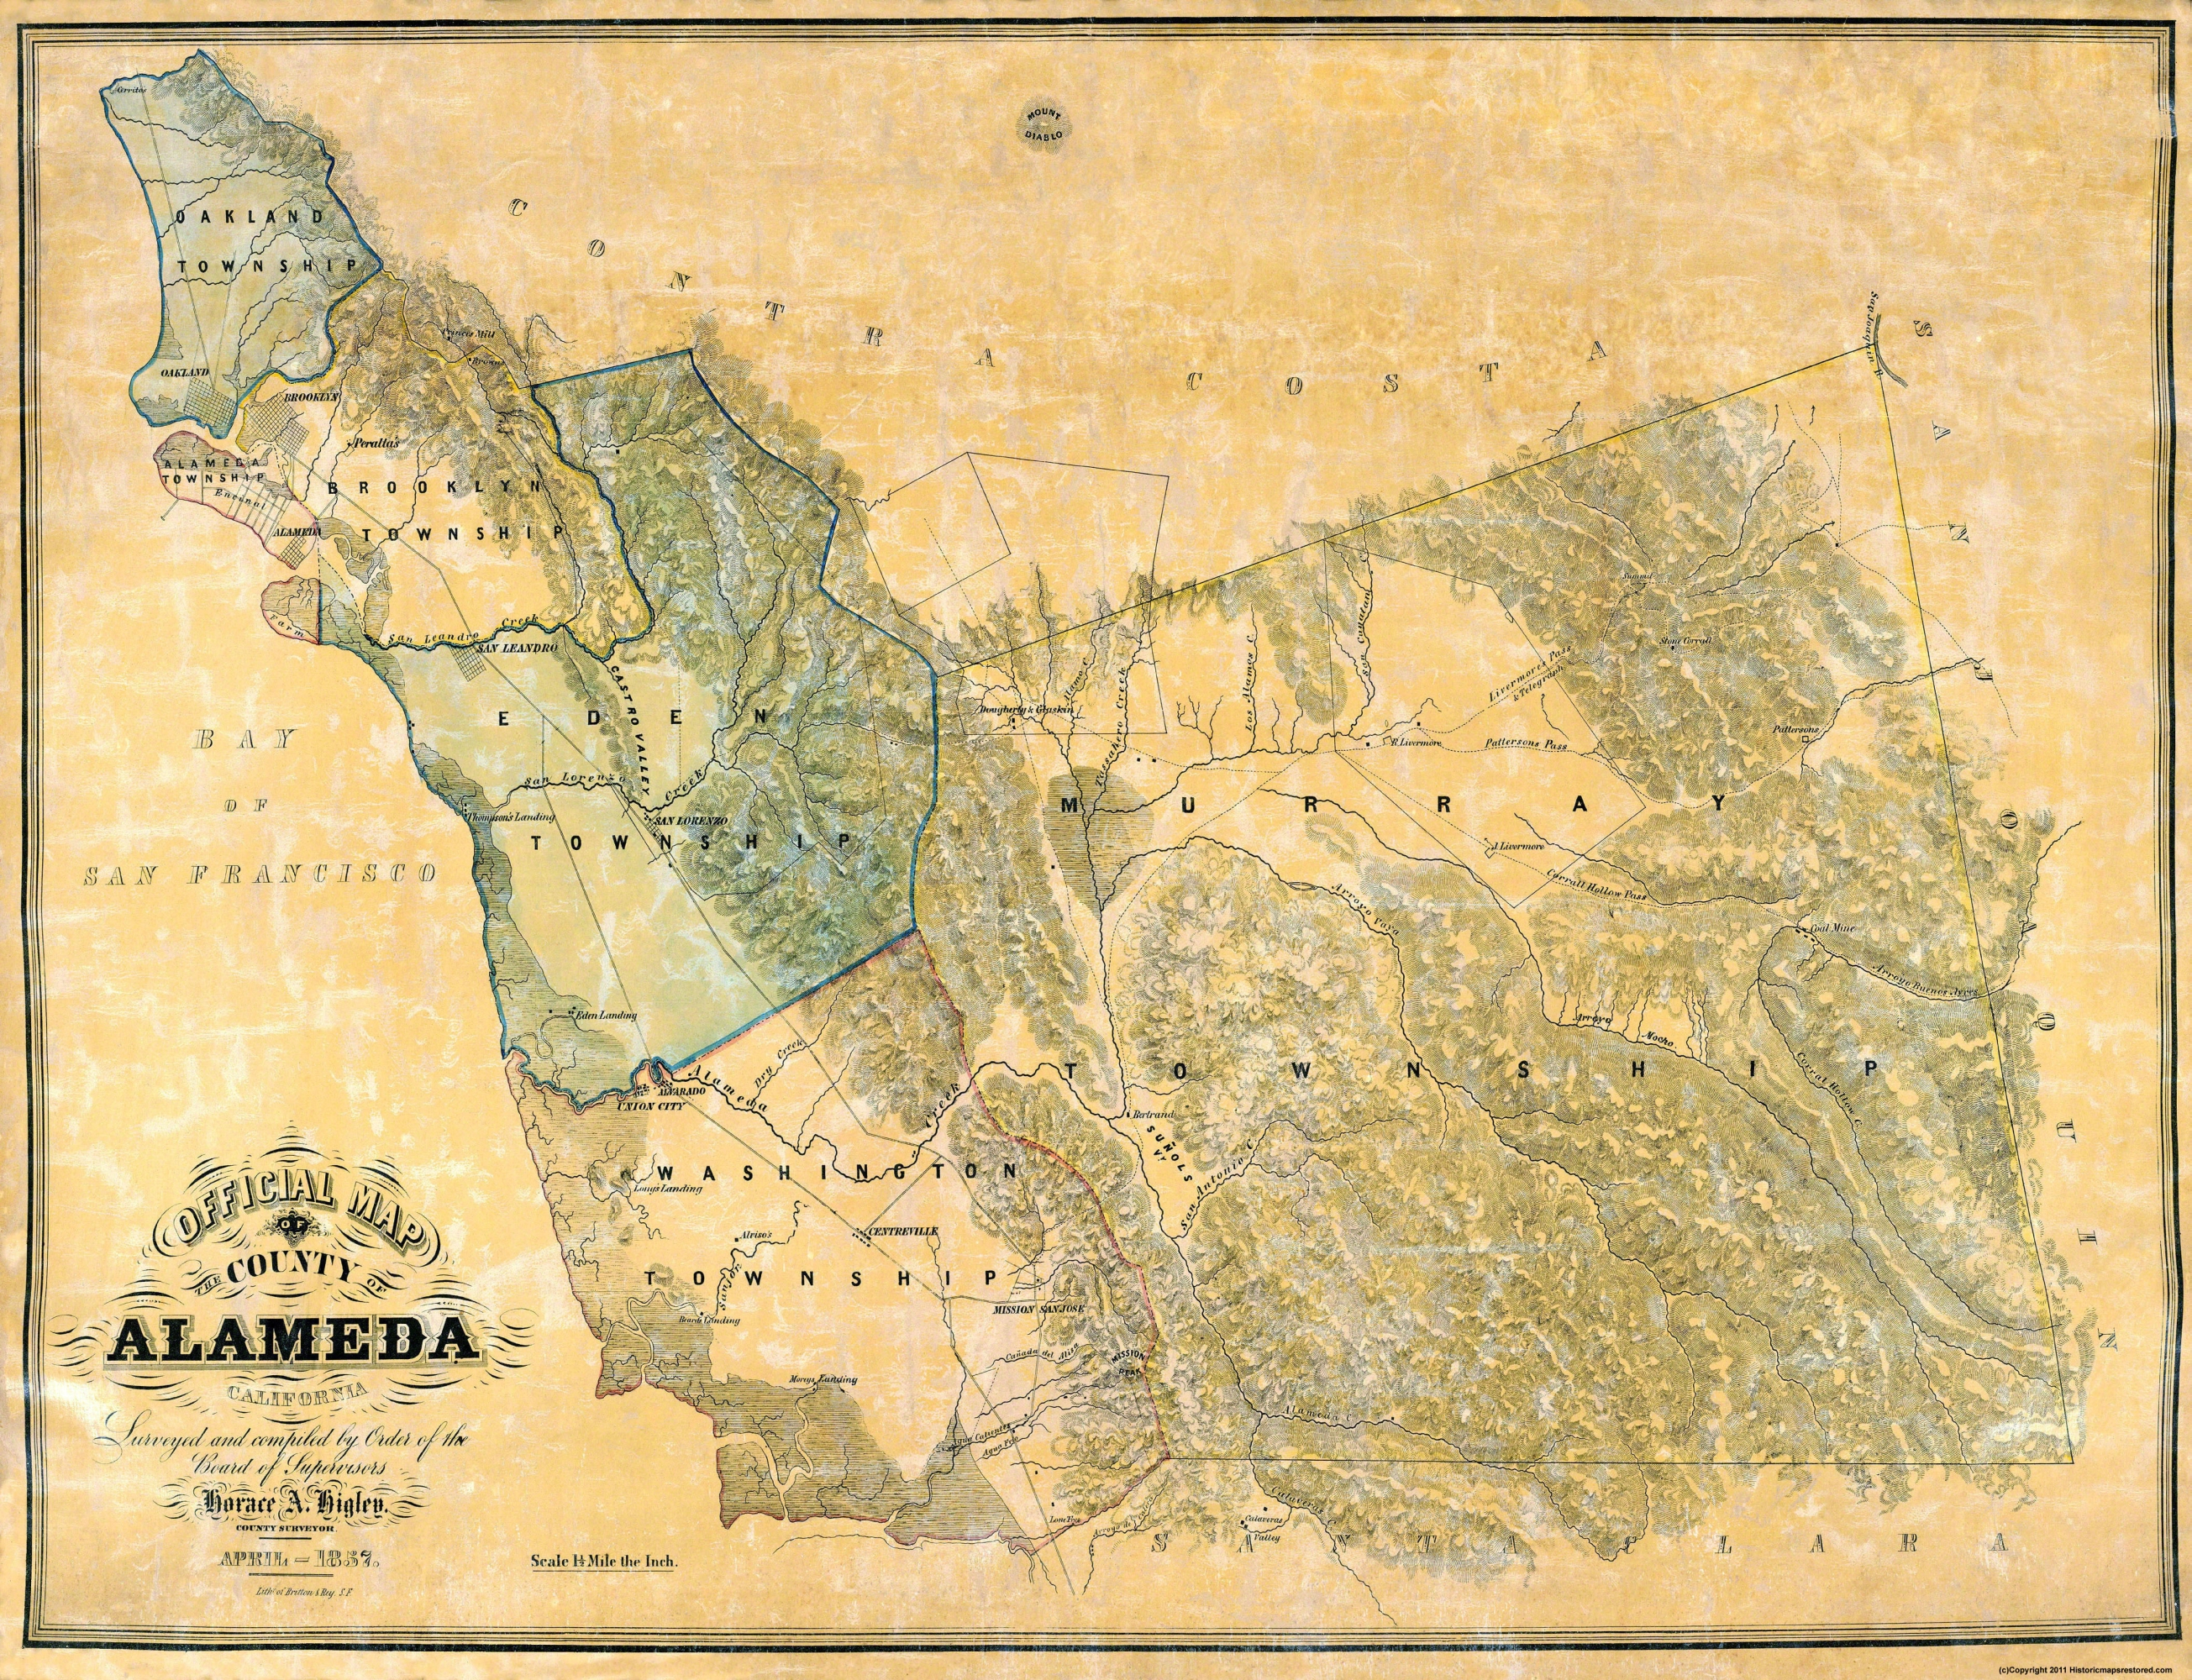 Old County Map Alameda California 1857